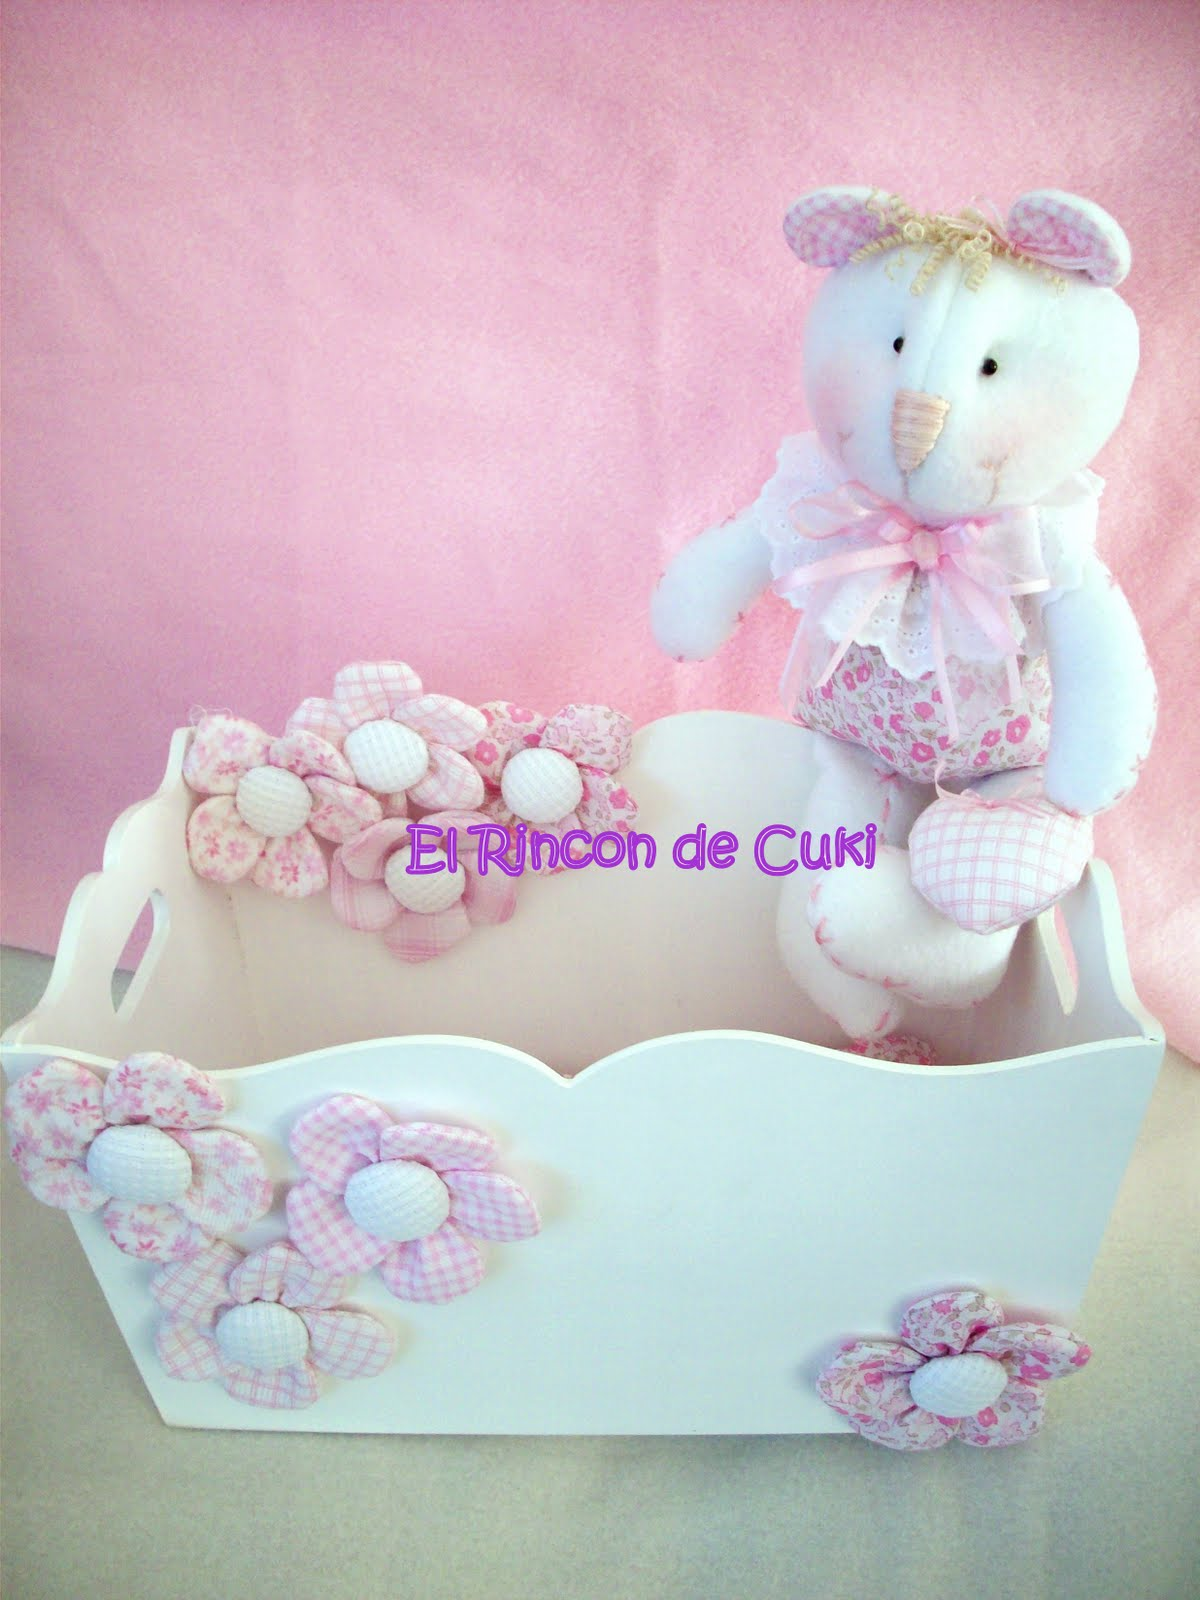 El rinc n de cuki artesan as country caja for Accesorios habitacion bebe